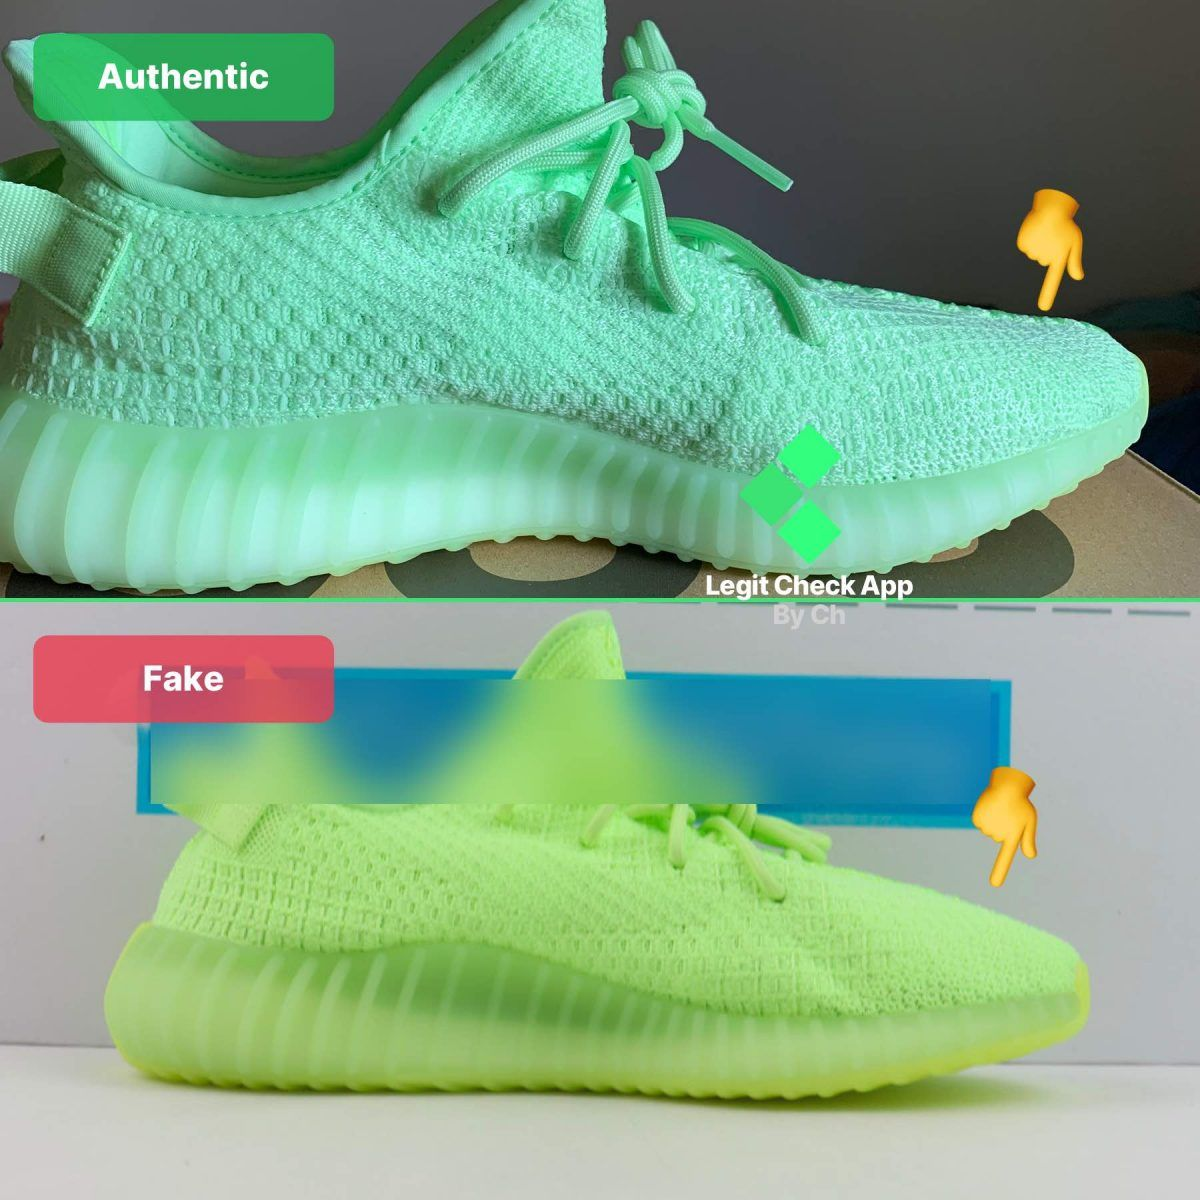 toe box of the Yeezy Boost 350 V2 Glow